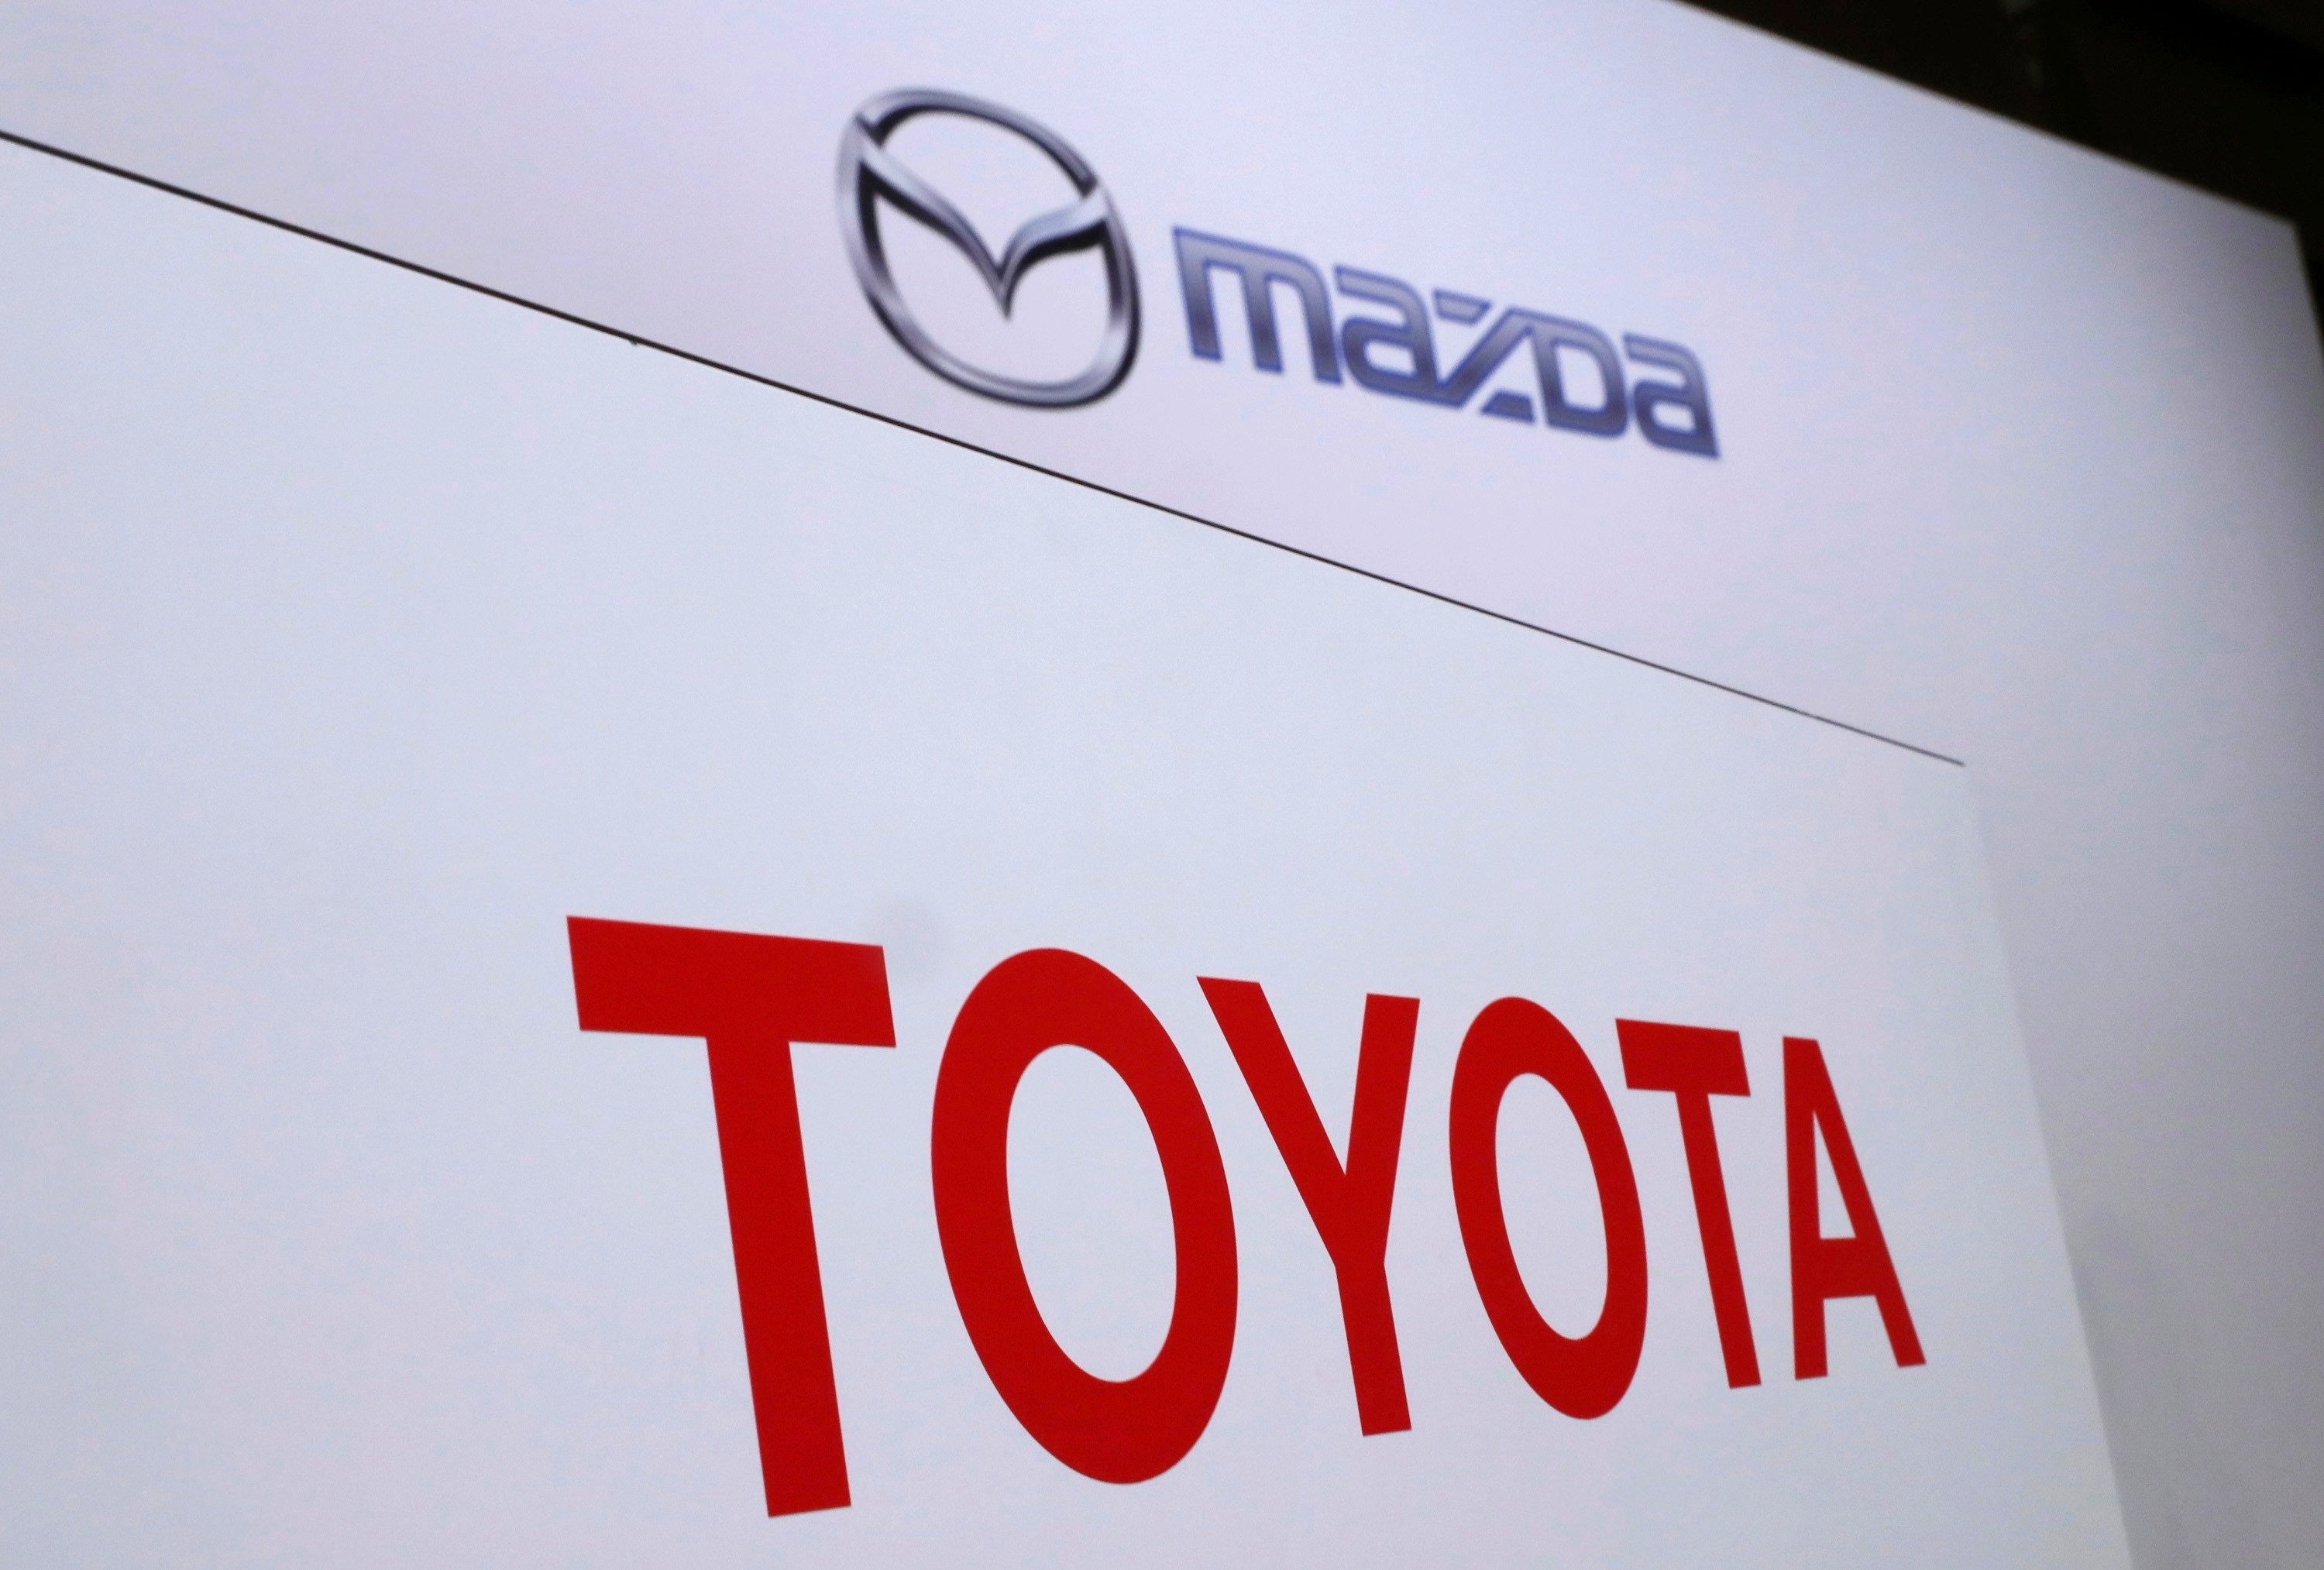 Toyota and Mazda have picked Alabama as the site of a new $1.6 billion joint-venture auto manufacturing plant a person briefed on the decision said Tuesday Jan. 9 2018